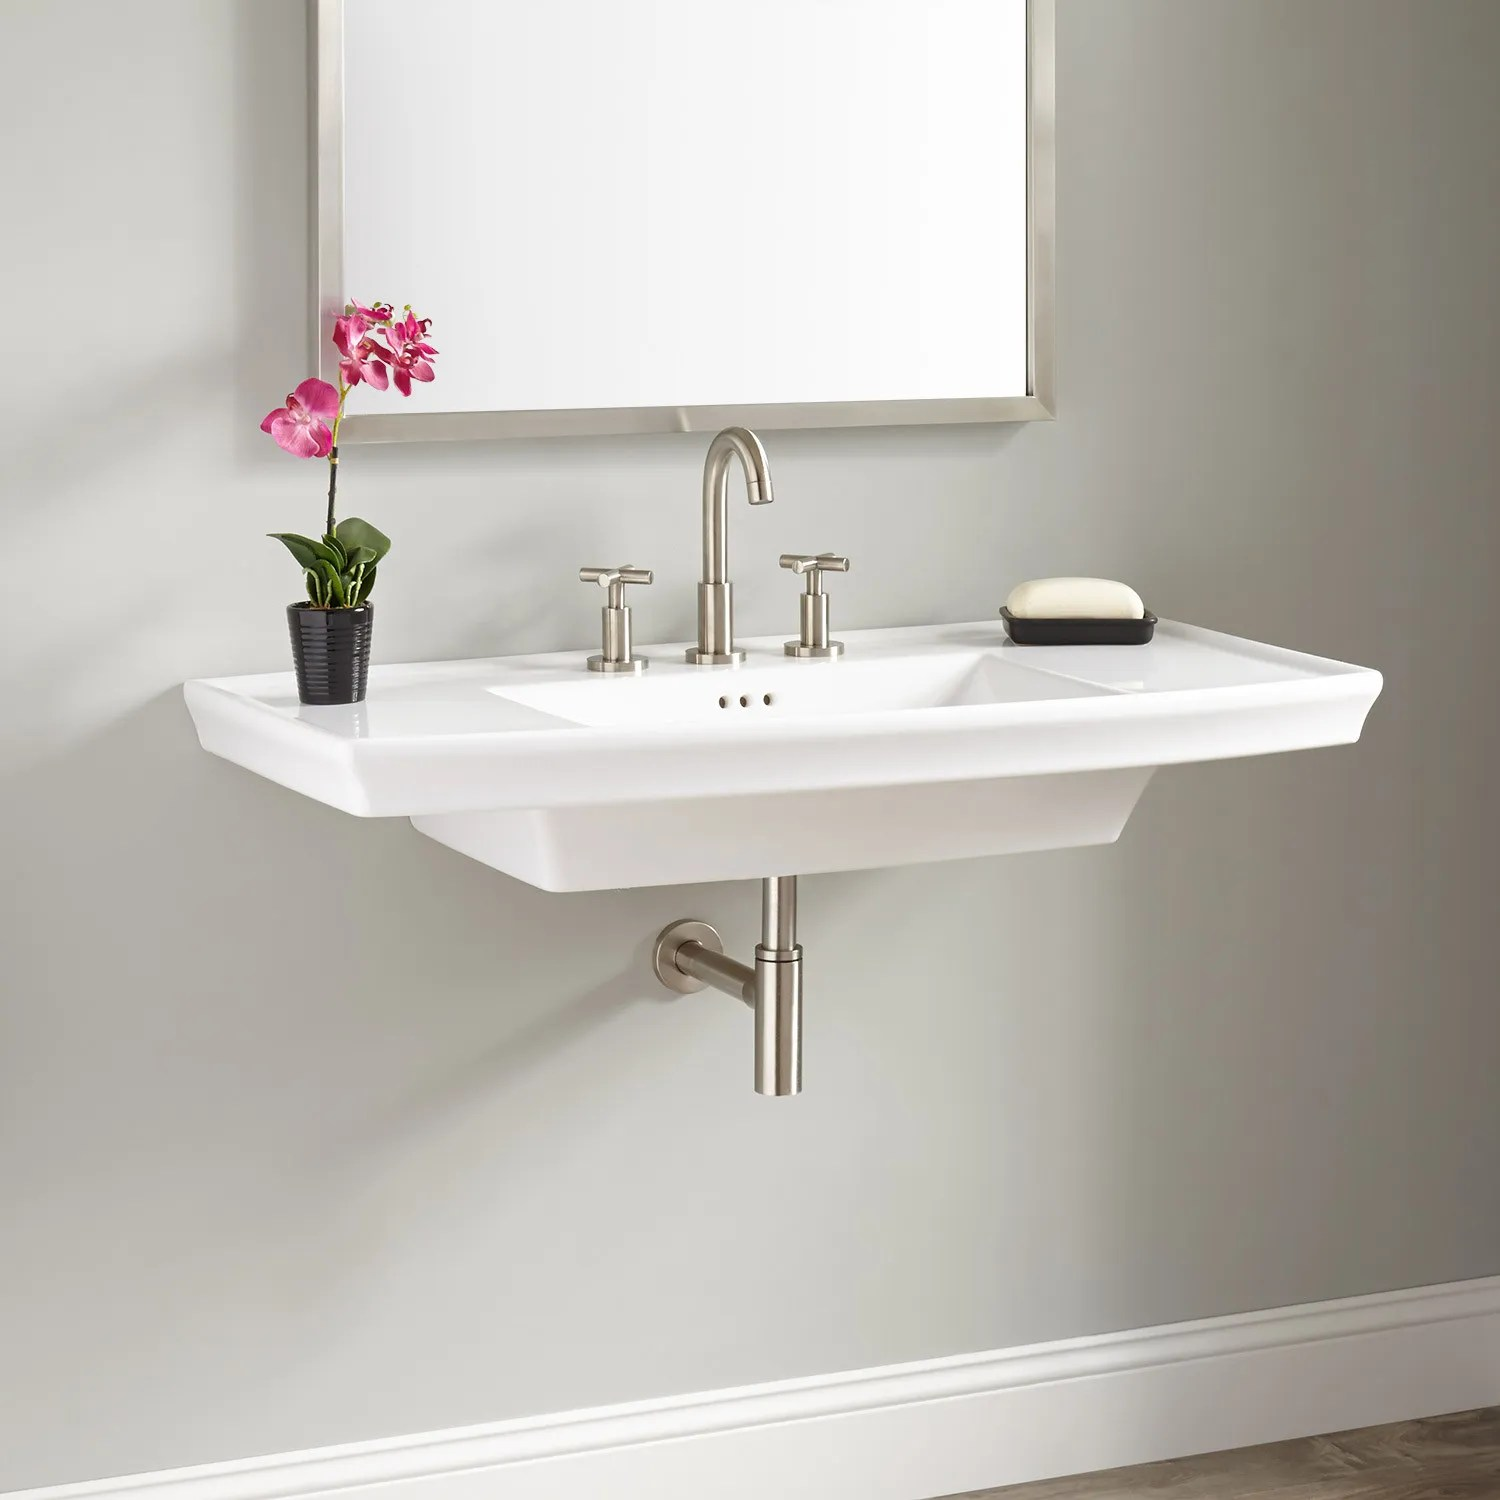 Olney Porcelain WallMount Sink  Bathroom Sinks  Bathroom